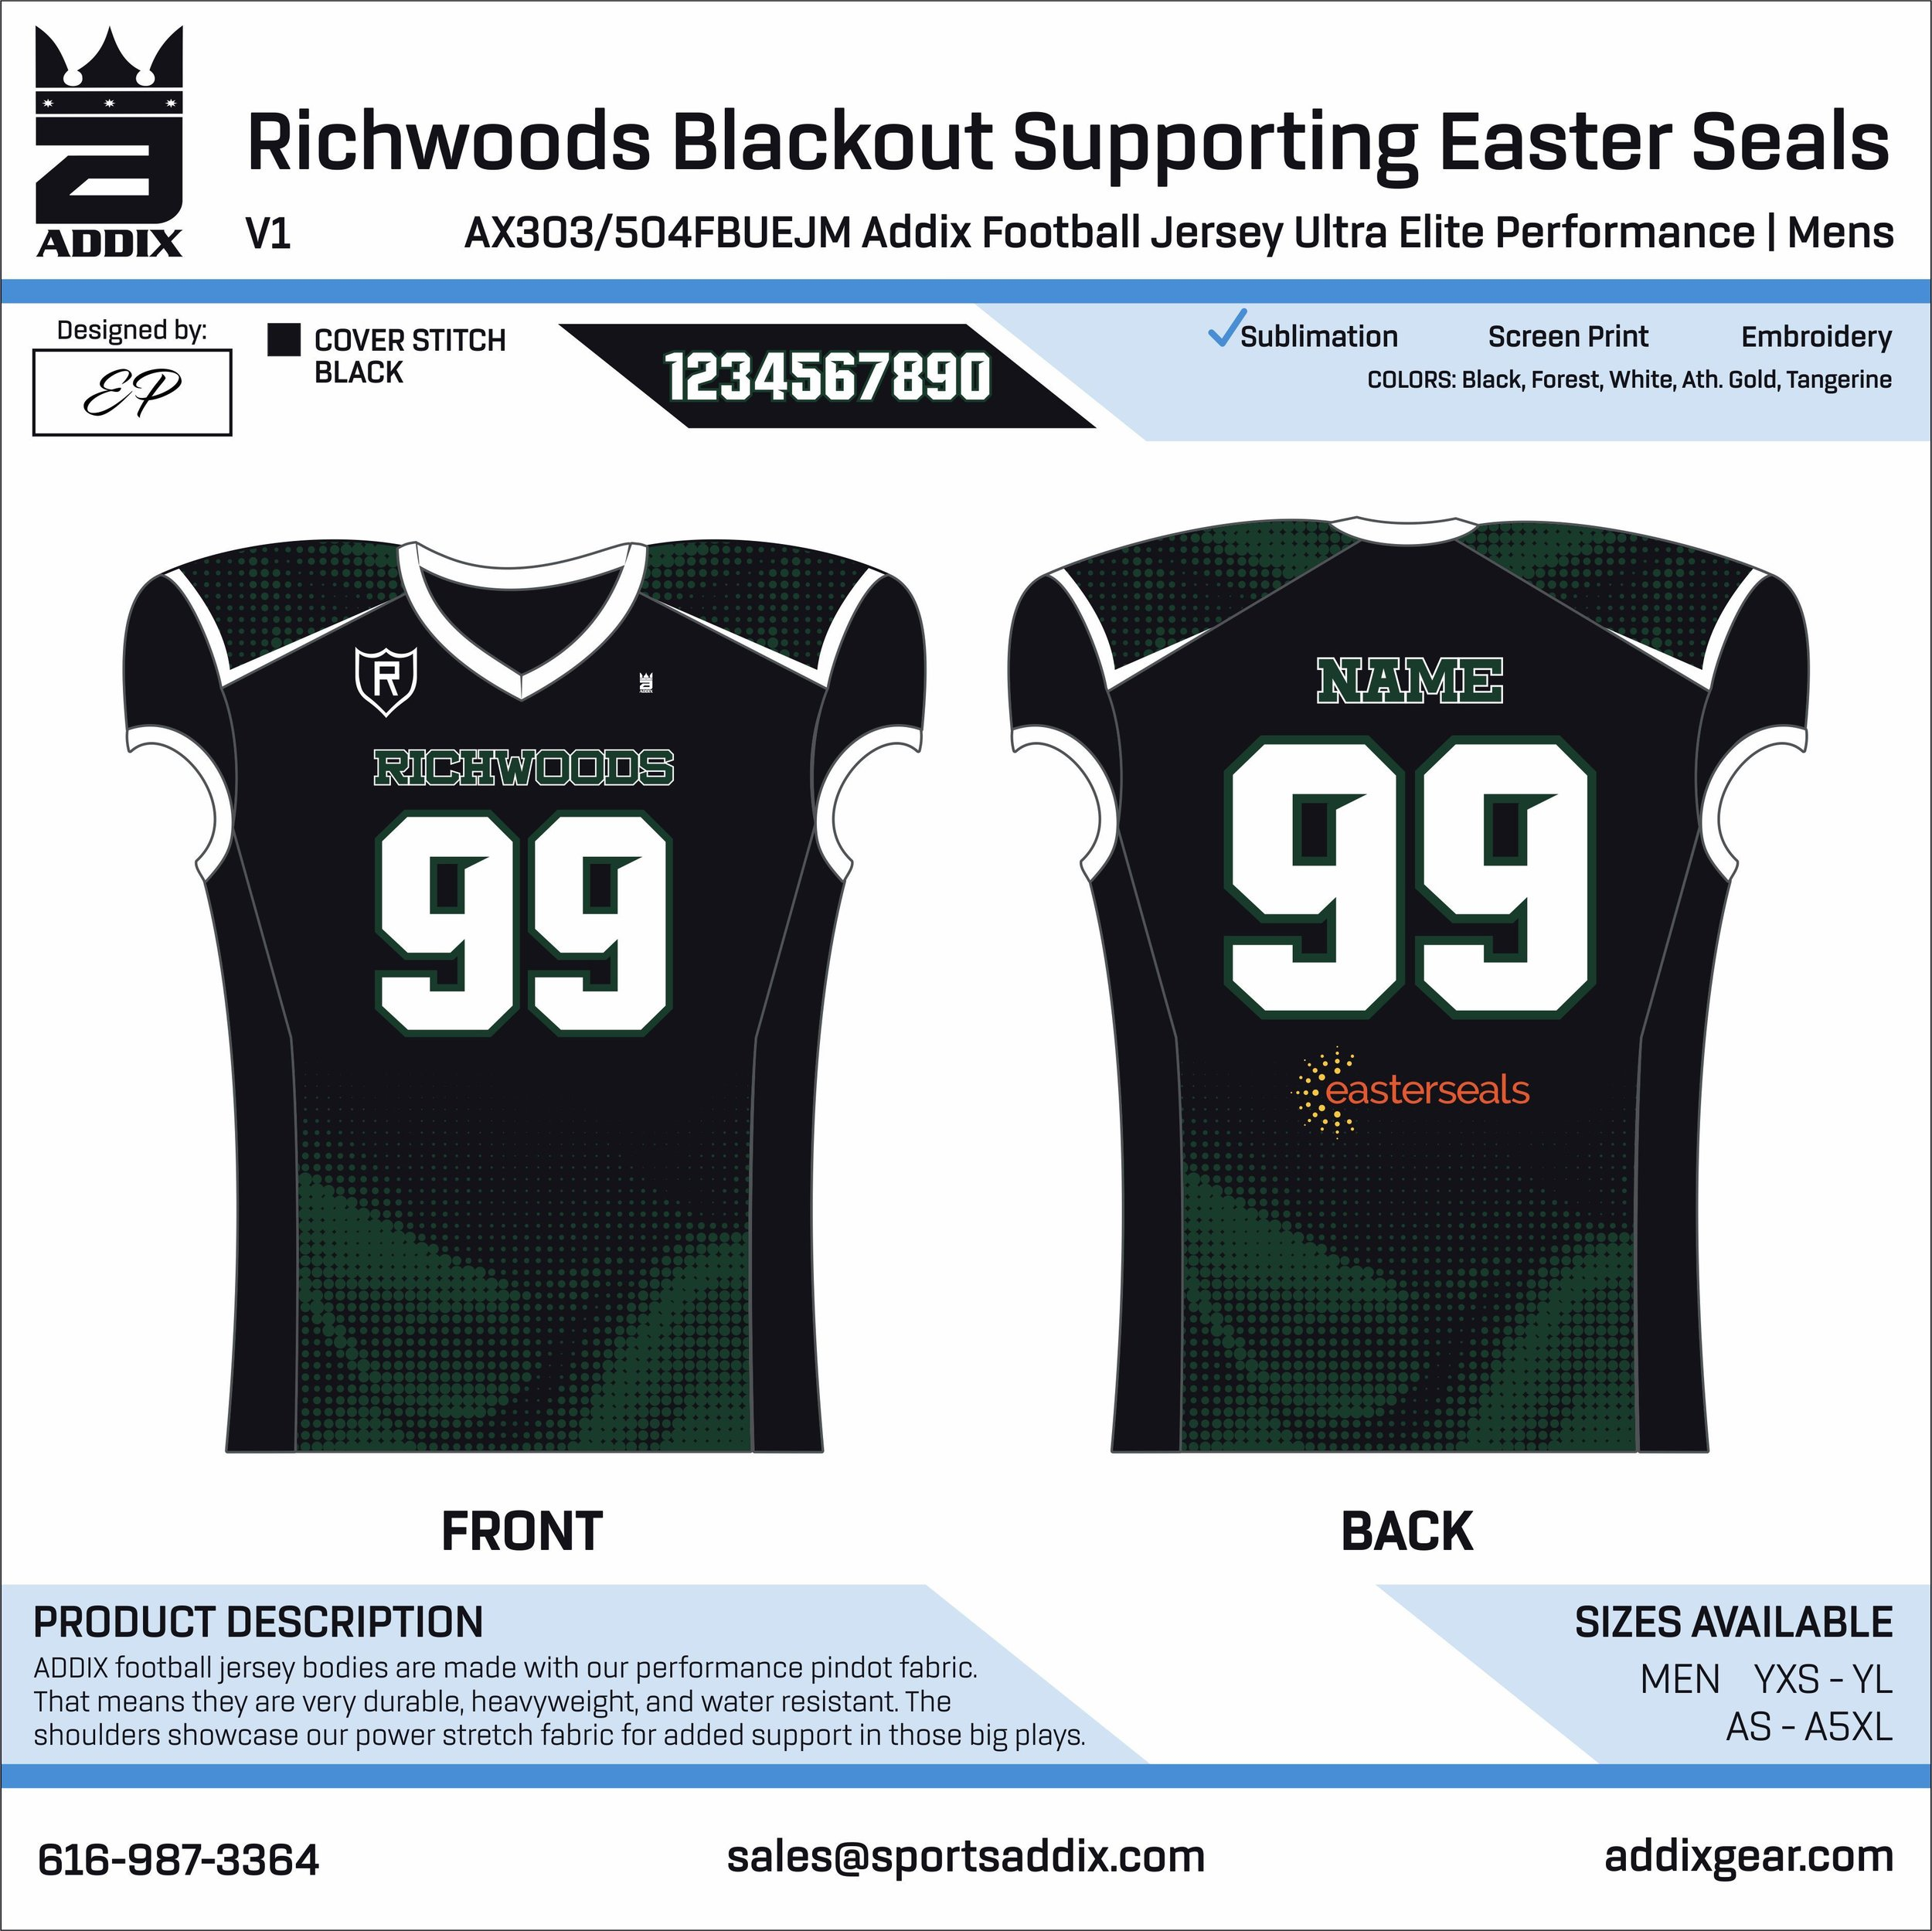 Richwoods Blackout Supporting Easter Seals_2019_8-13_EP_football ue jersey.jpg